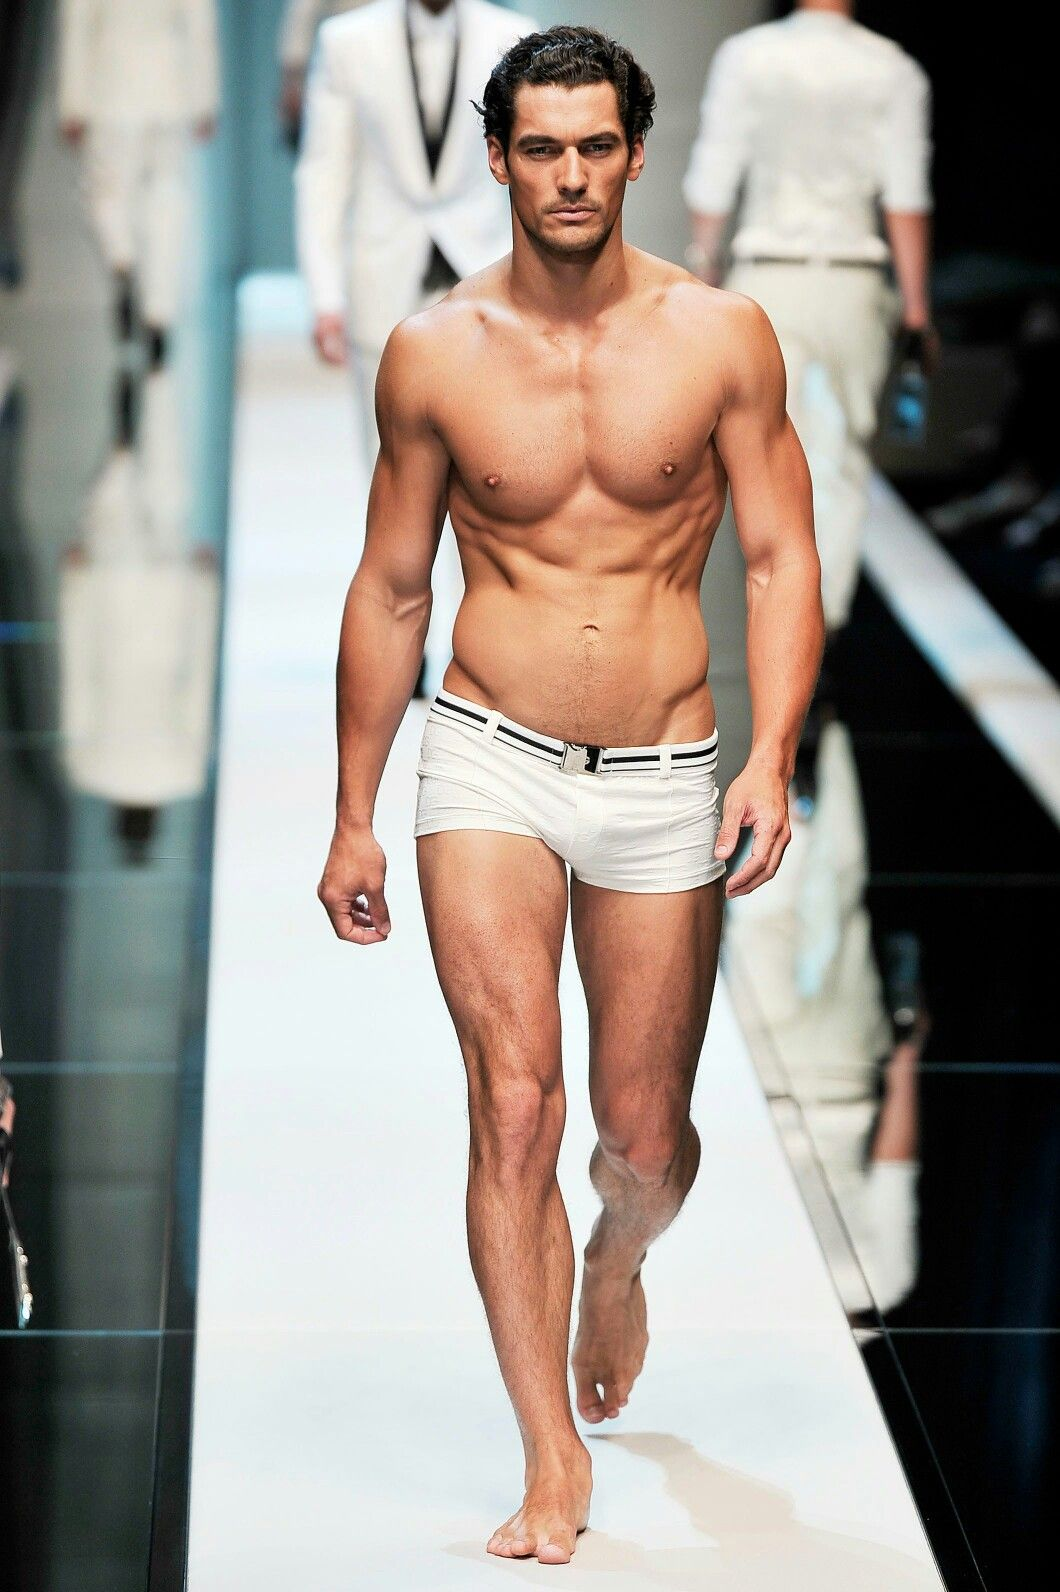 89f35c62254ff Men's underwear/swimwear Runway Show, David Gandy | Men fashion ...